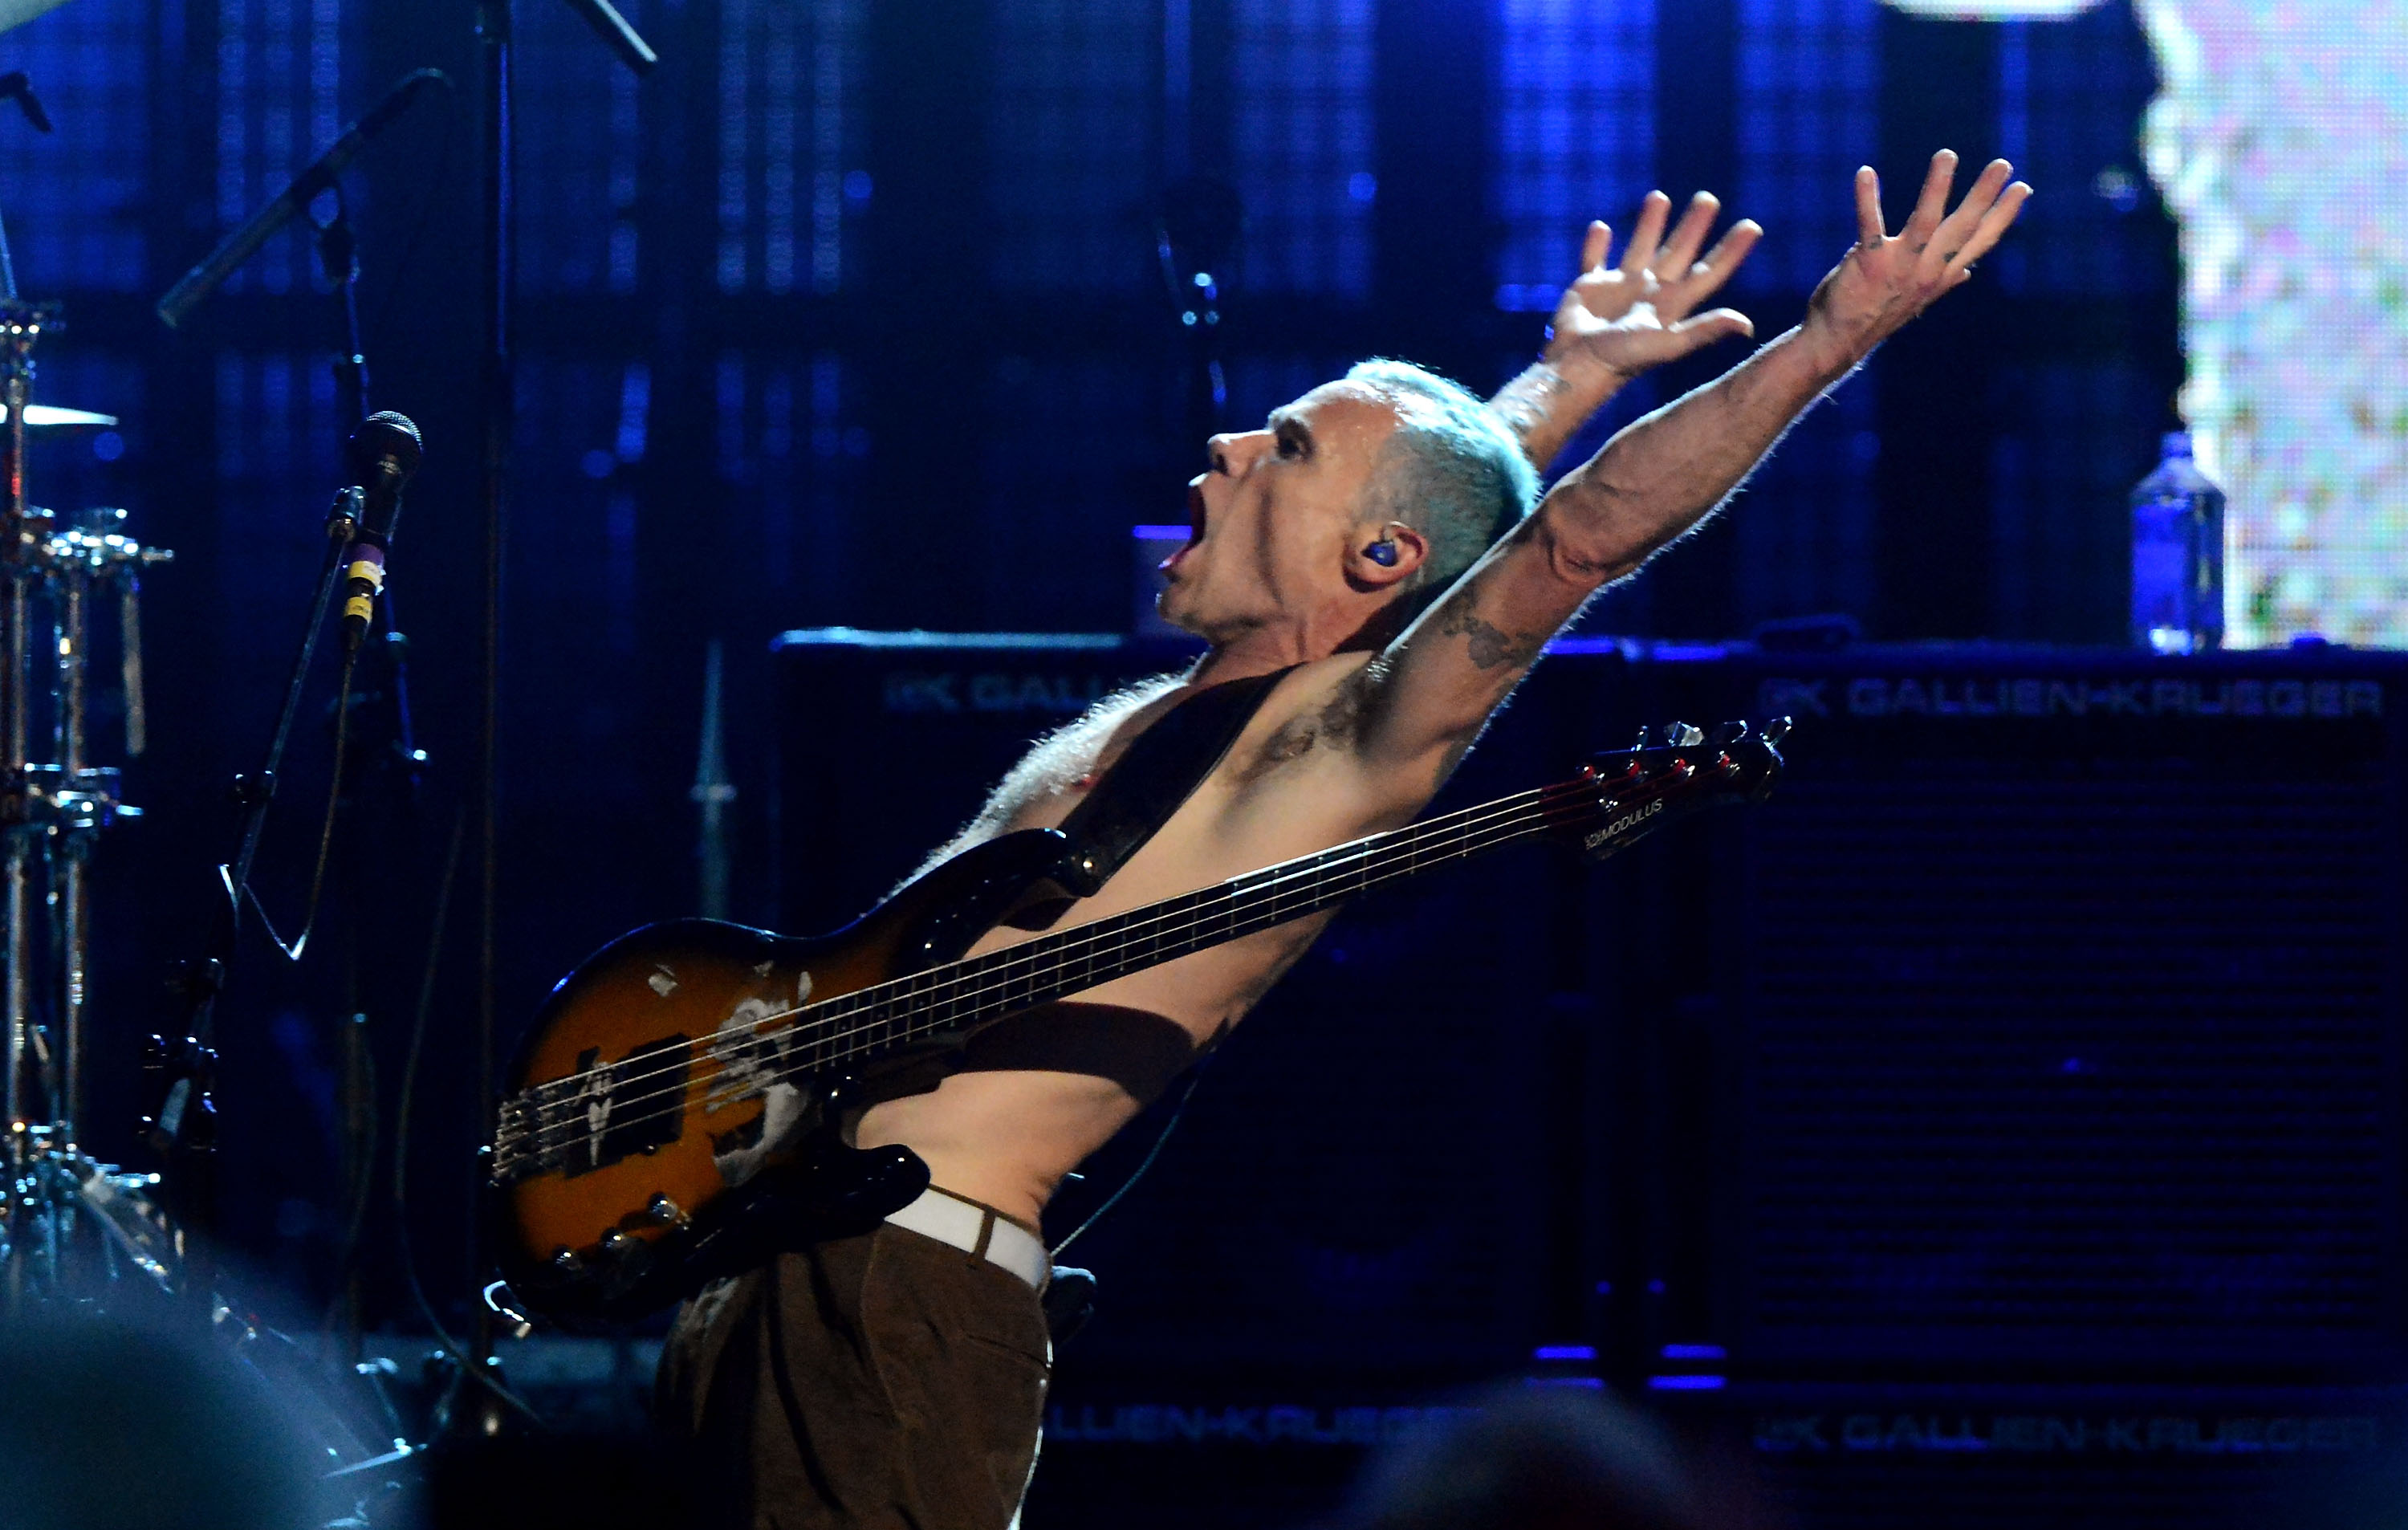 CLEVELAND, OH - APRIL 14: Inductee Flea, of the Red Hot Chili Peppers, performs on stage at the 27th Annual Rock And Roll Hall Of Fame Induction Ceremony at Public Hall on April 14, 2012 in Cleveland, Ohio. (Photo by Jeff Kravitz/FilmMagic)